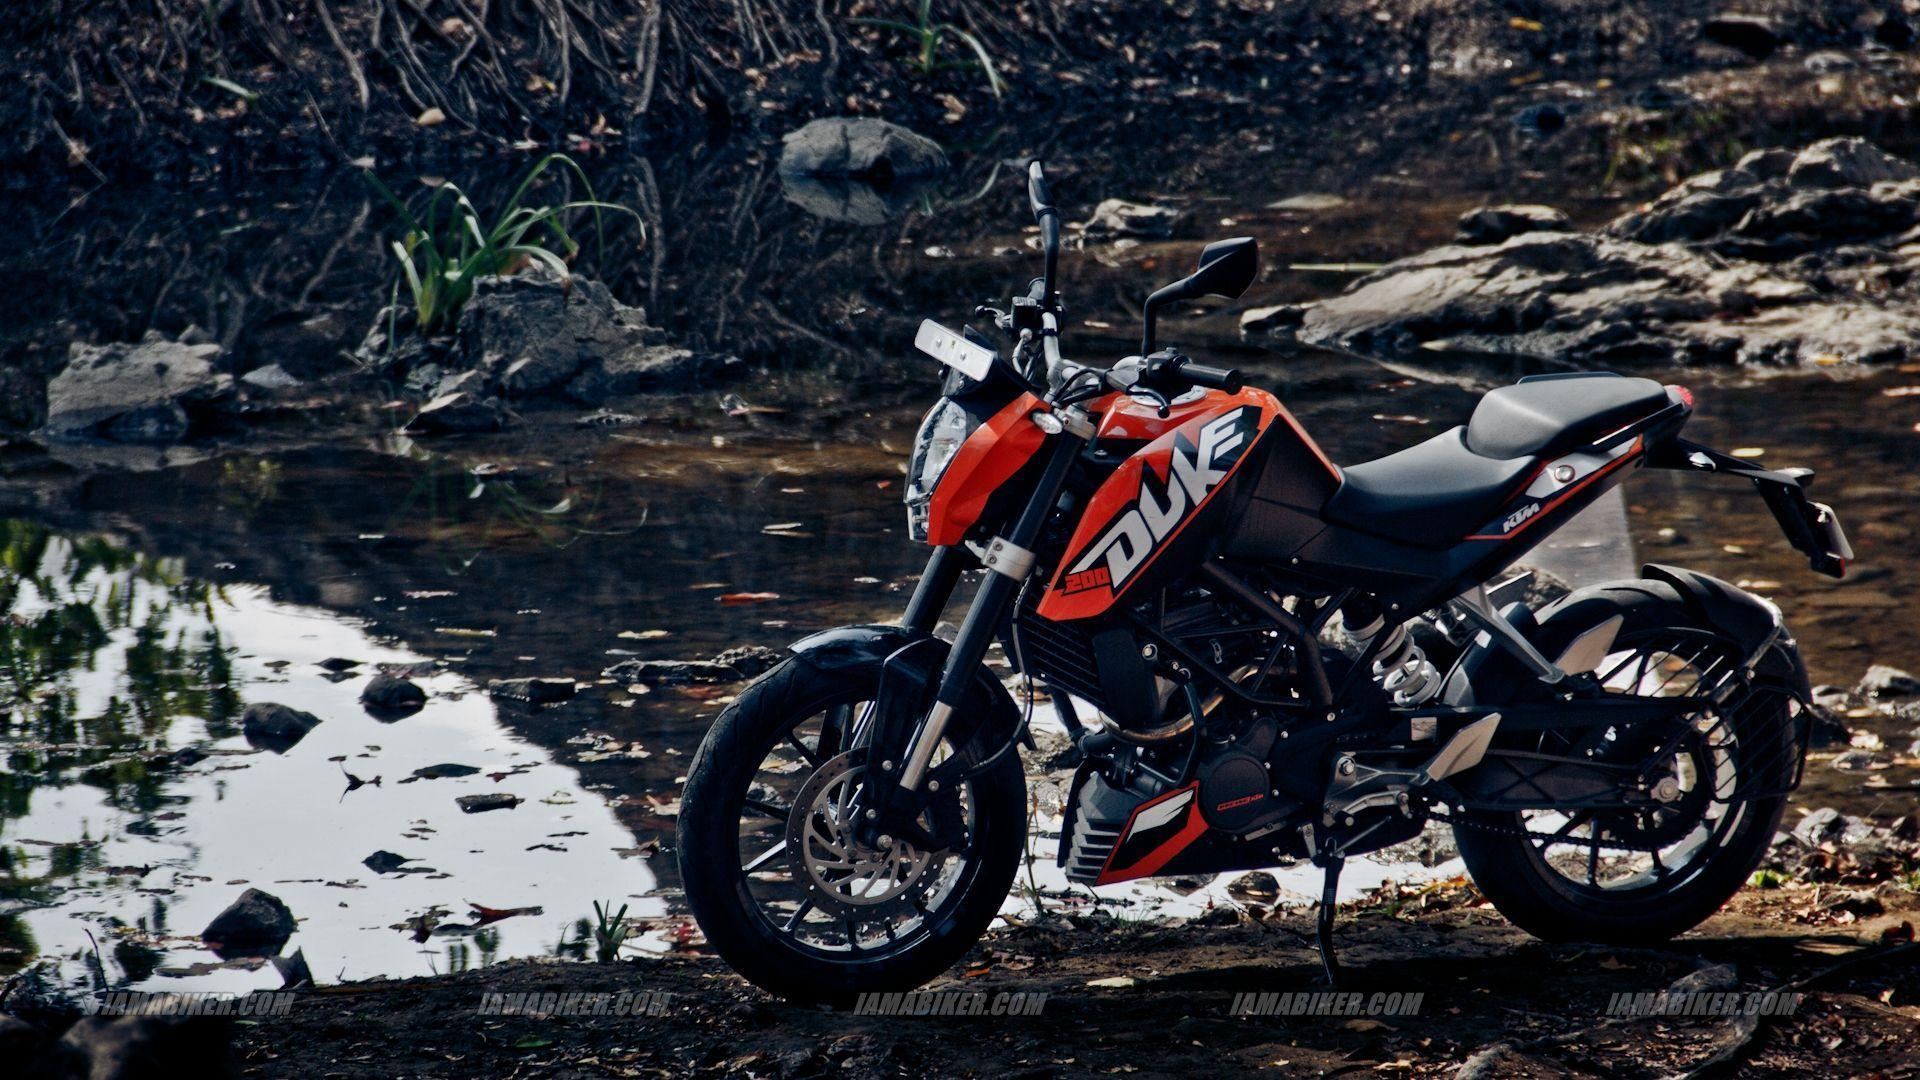 Ktm Duke Bike Full Hd Image